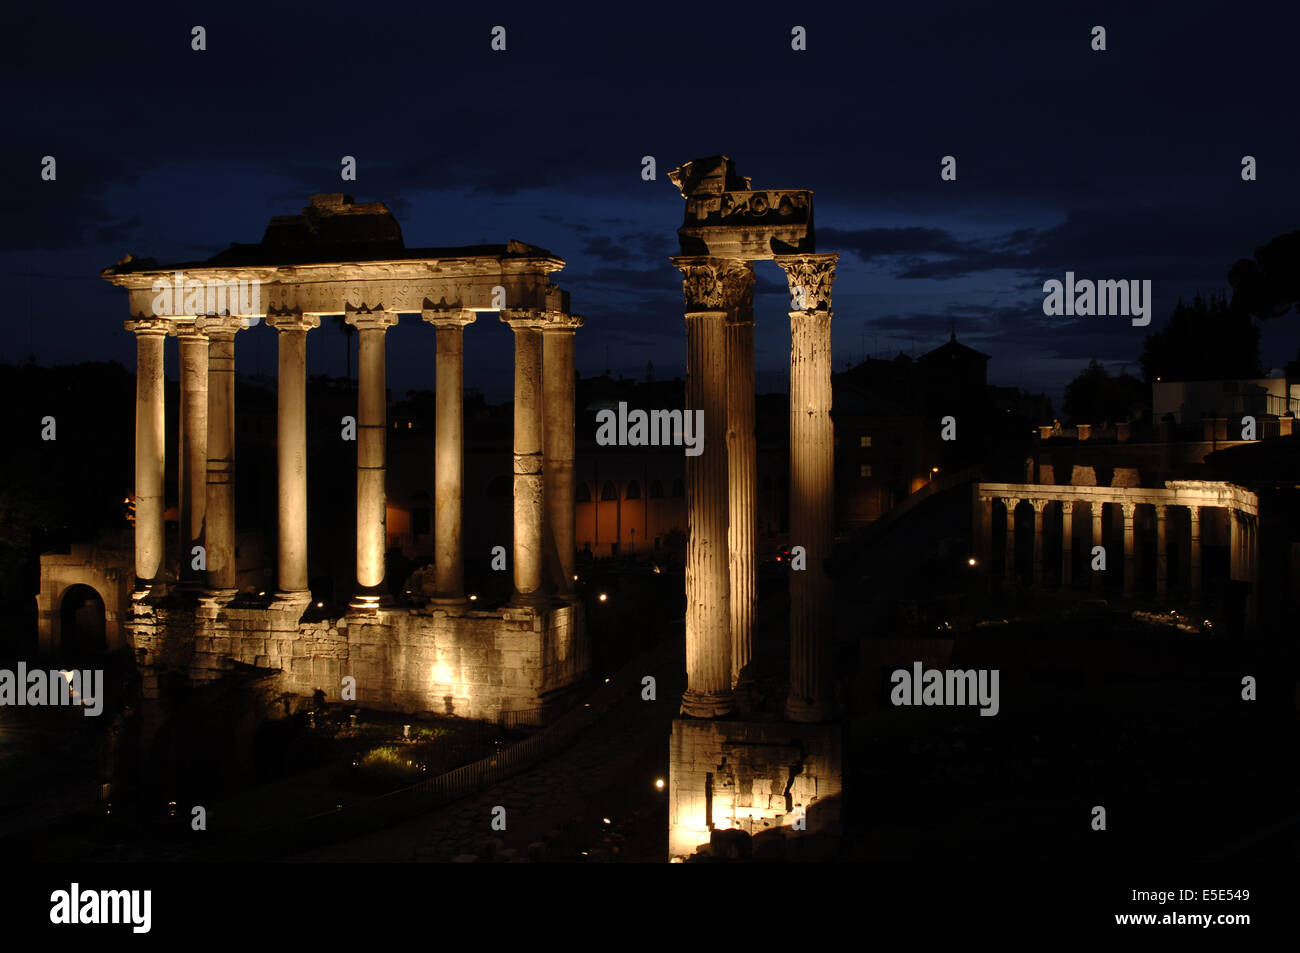 Italy. Rome. Roman Forum. Temple of Saturn, 5th century BC, reconstructed in the 3rd century, and Temple of Concord. - Stock Image